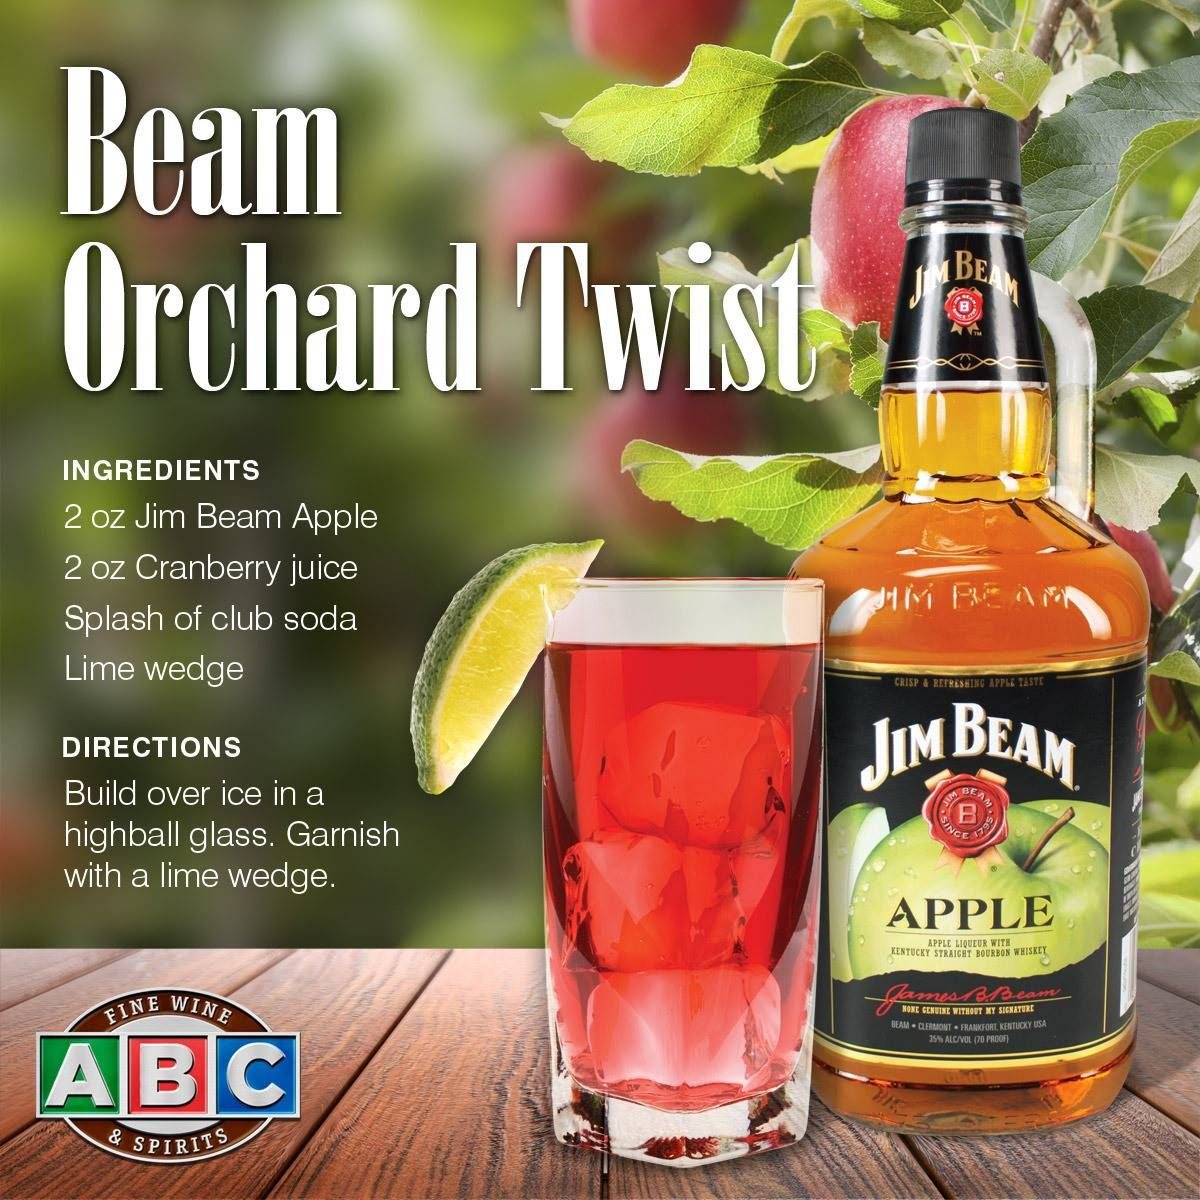 Jim Beam Apple Orchard Twist Elevate Your Tailgate